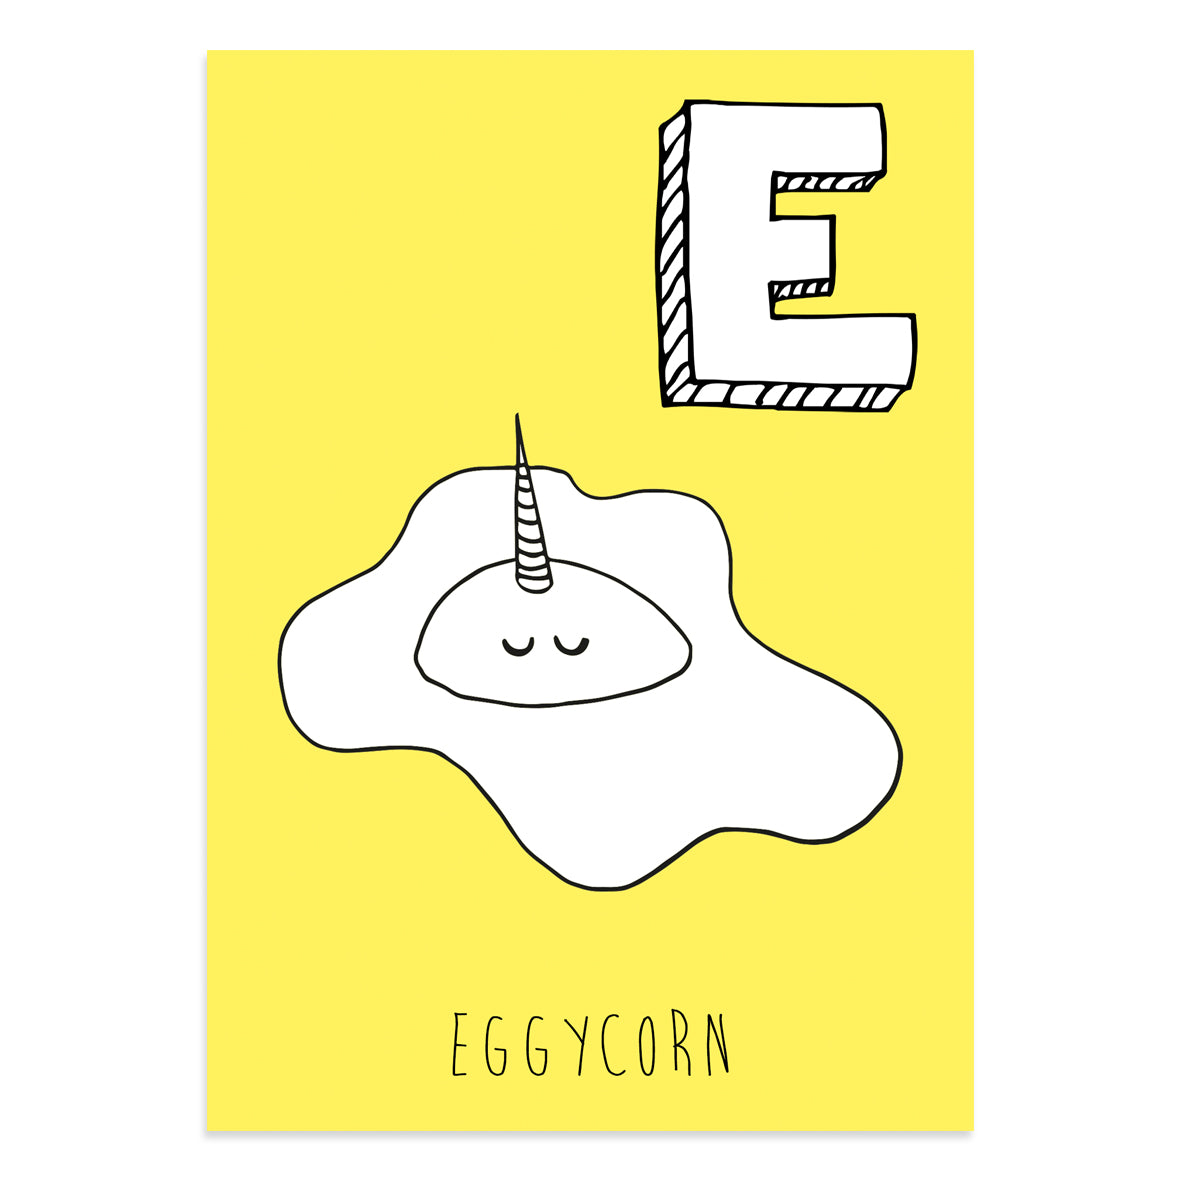 Unicorn postcard featuring E for Eggycorn